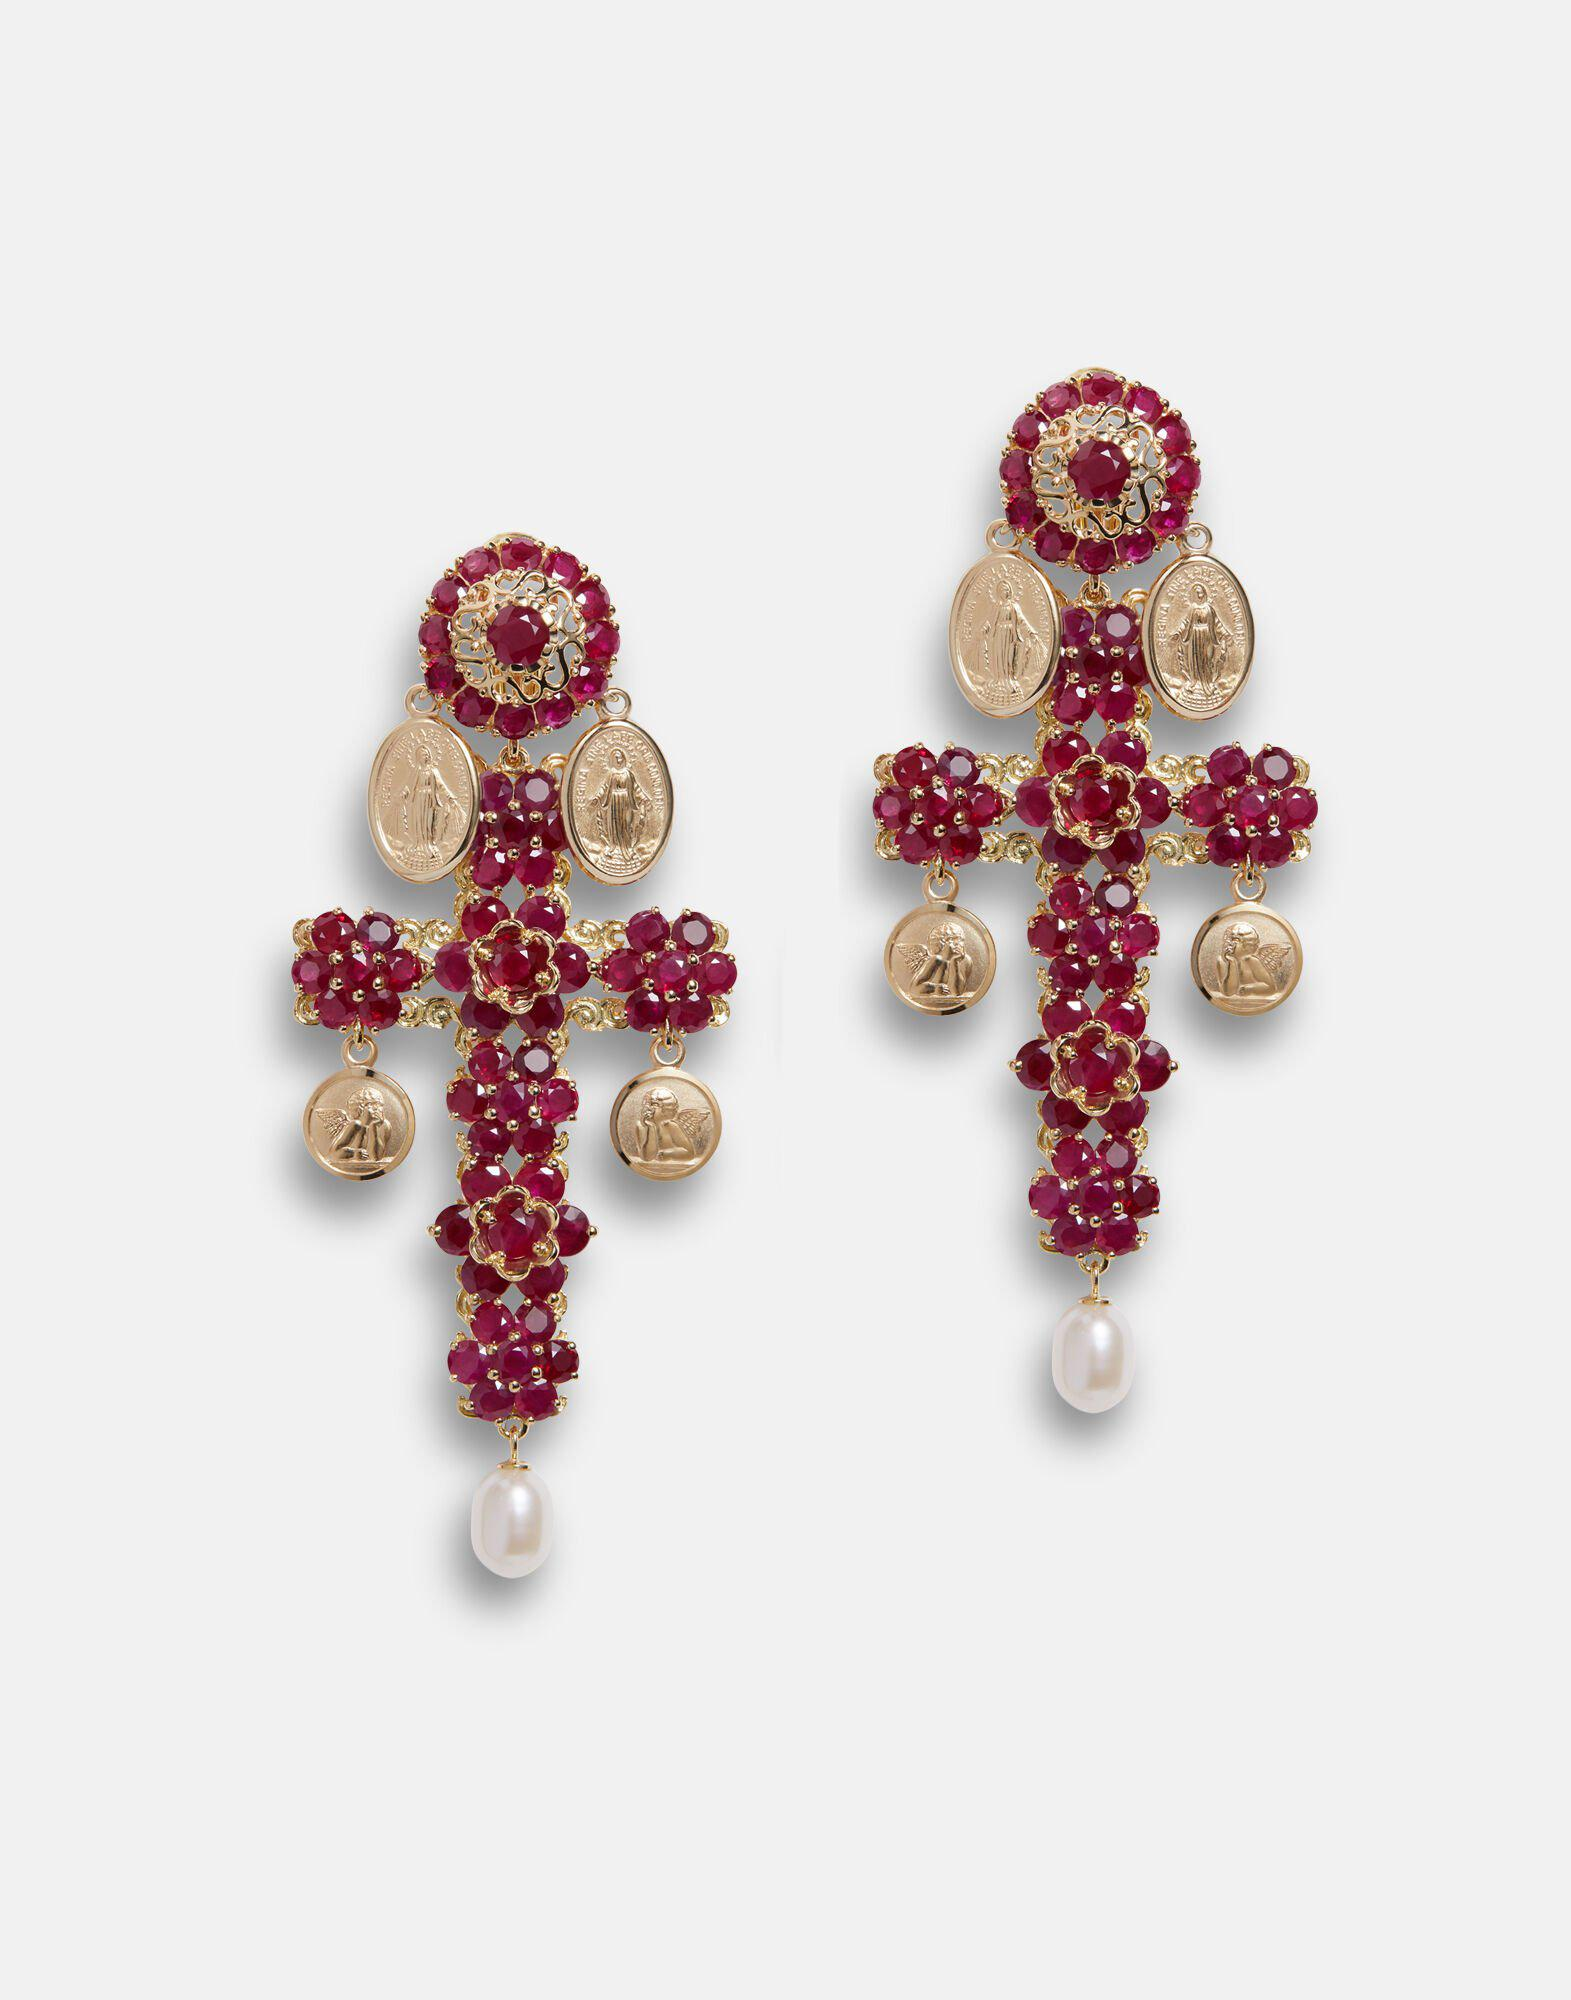 Family yellow gold cross pendant earrings with rubies